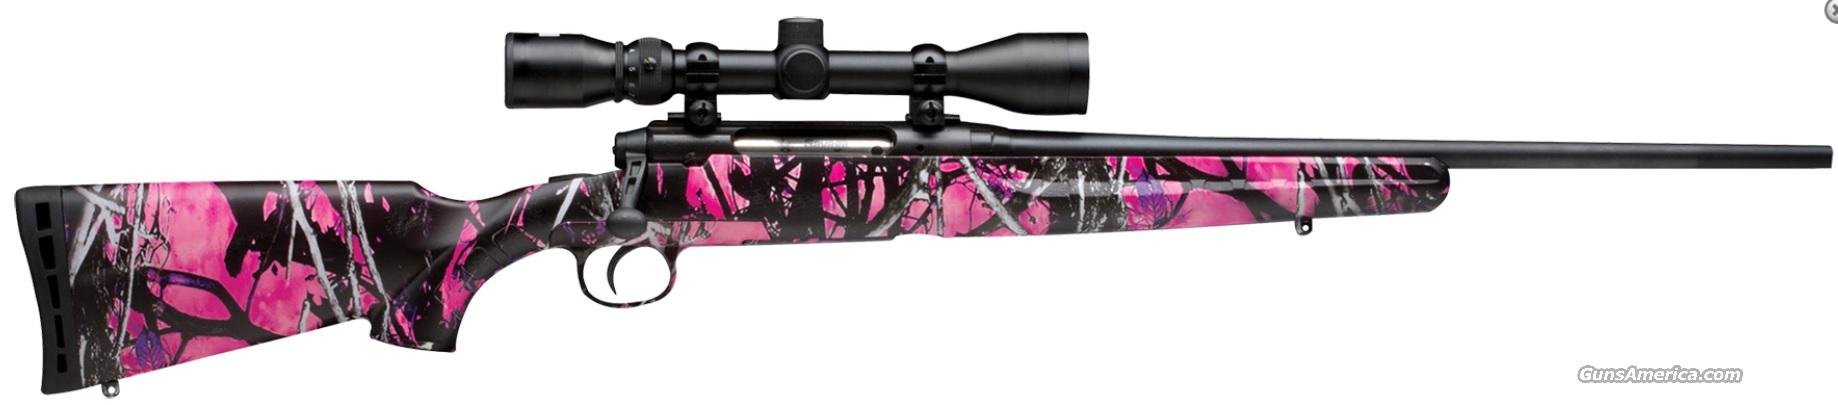 SAVAGE AXIS YOUTH .223 REM MUDDY GIRL CAMO SYN W/3-9X40  Guns > Rifles > Savage Rifles > Standard Bolt Action > Sporting